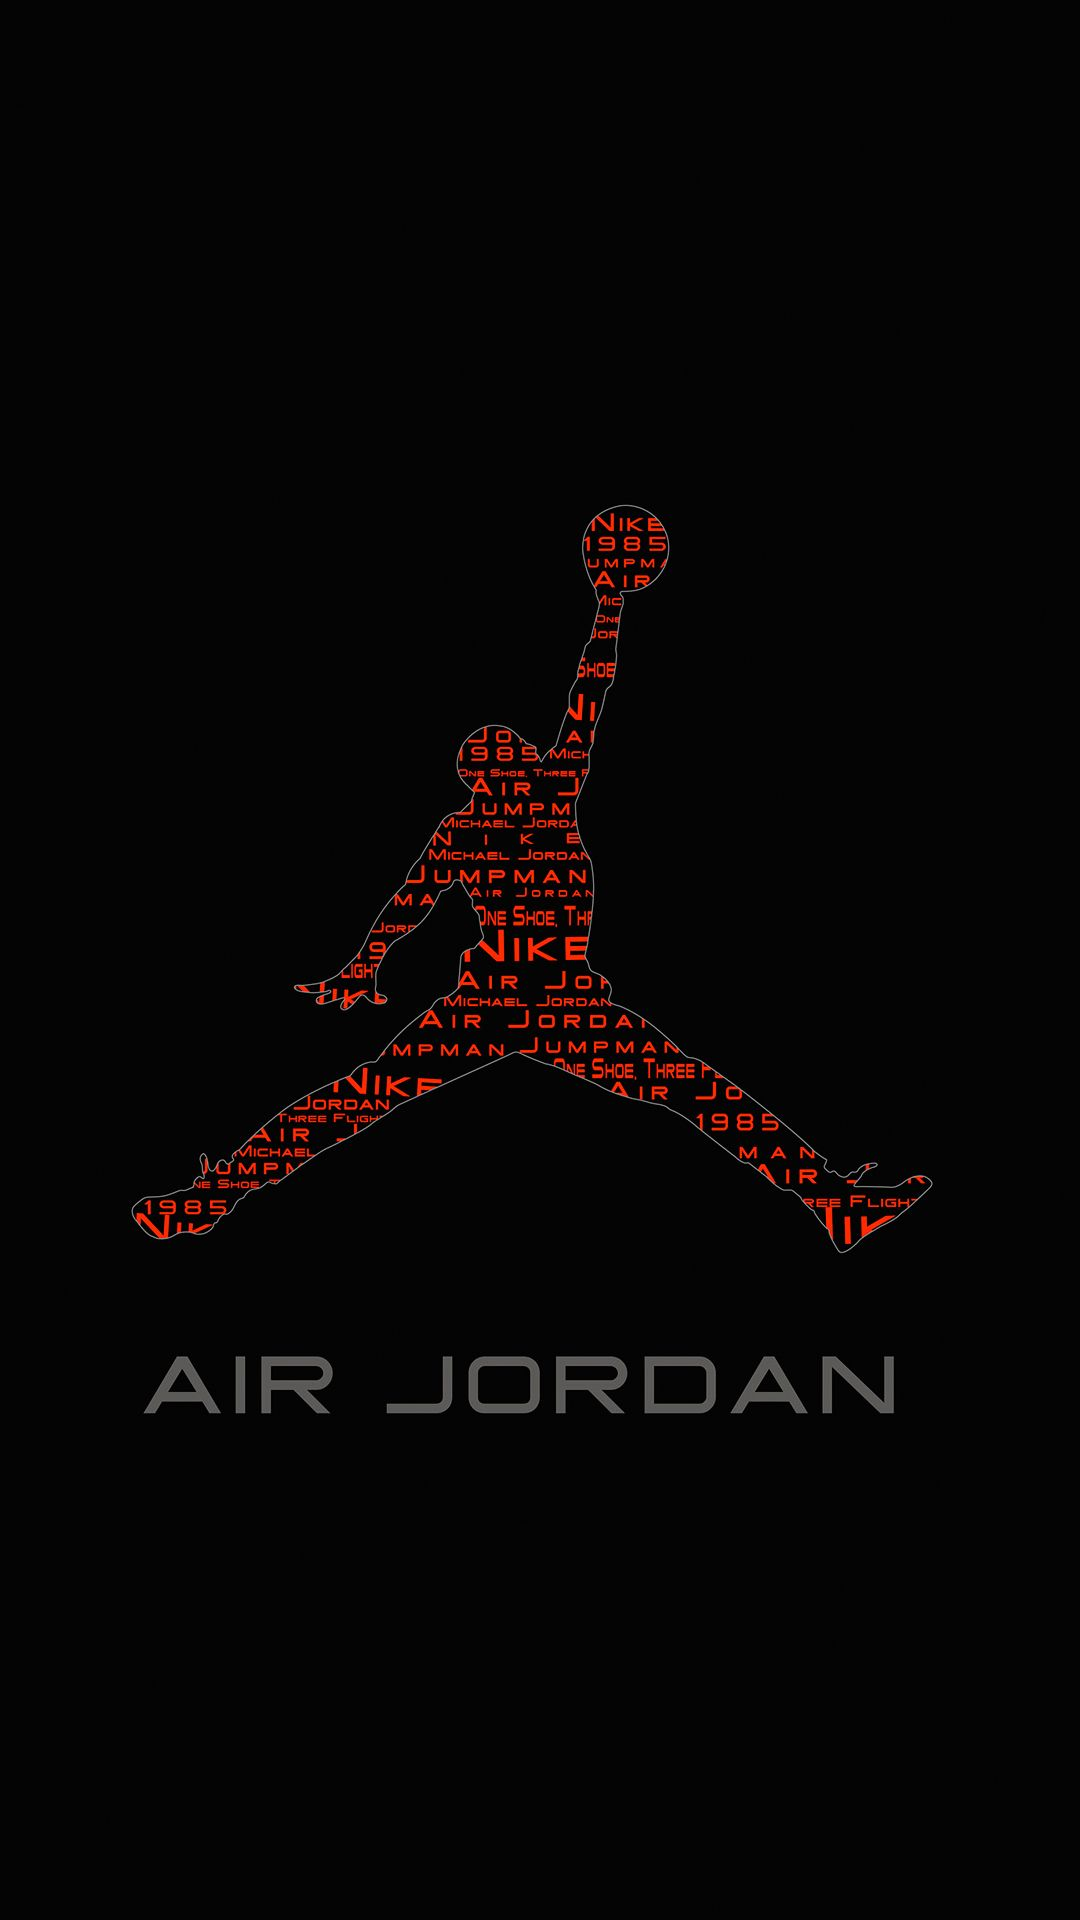 Jordan Wallpaper High Definition Hupages Download Iphone